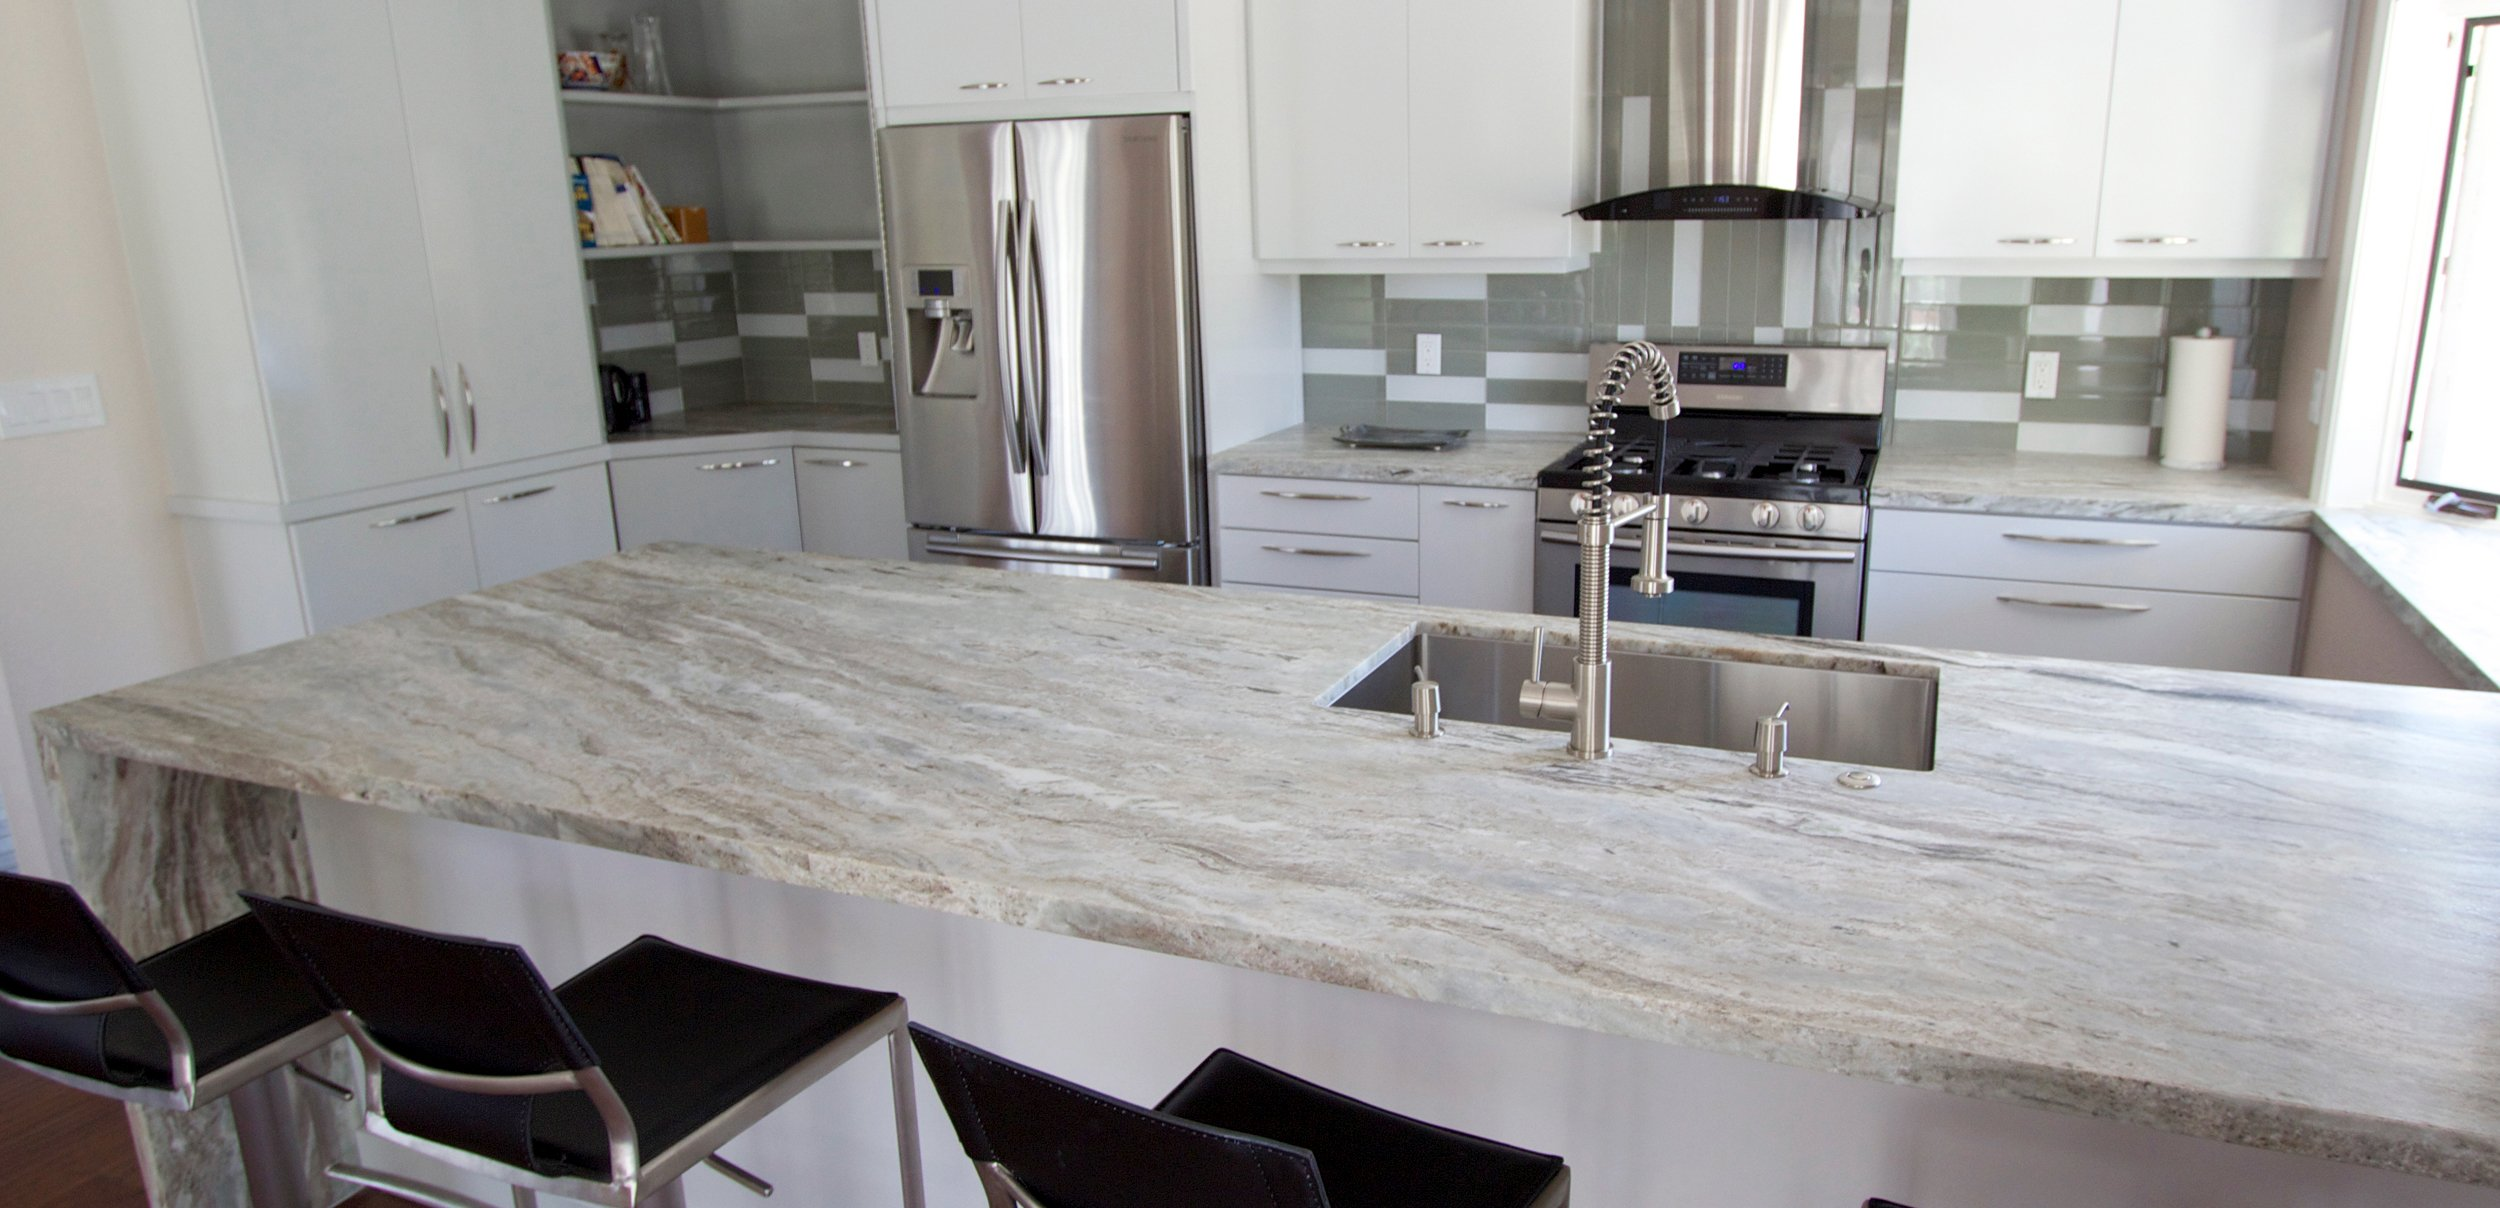 remodeling division, san diego ca   over 25 years experience   tr